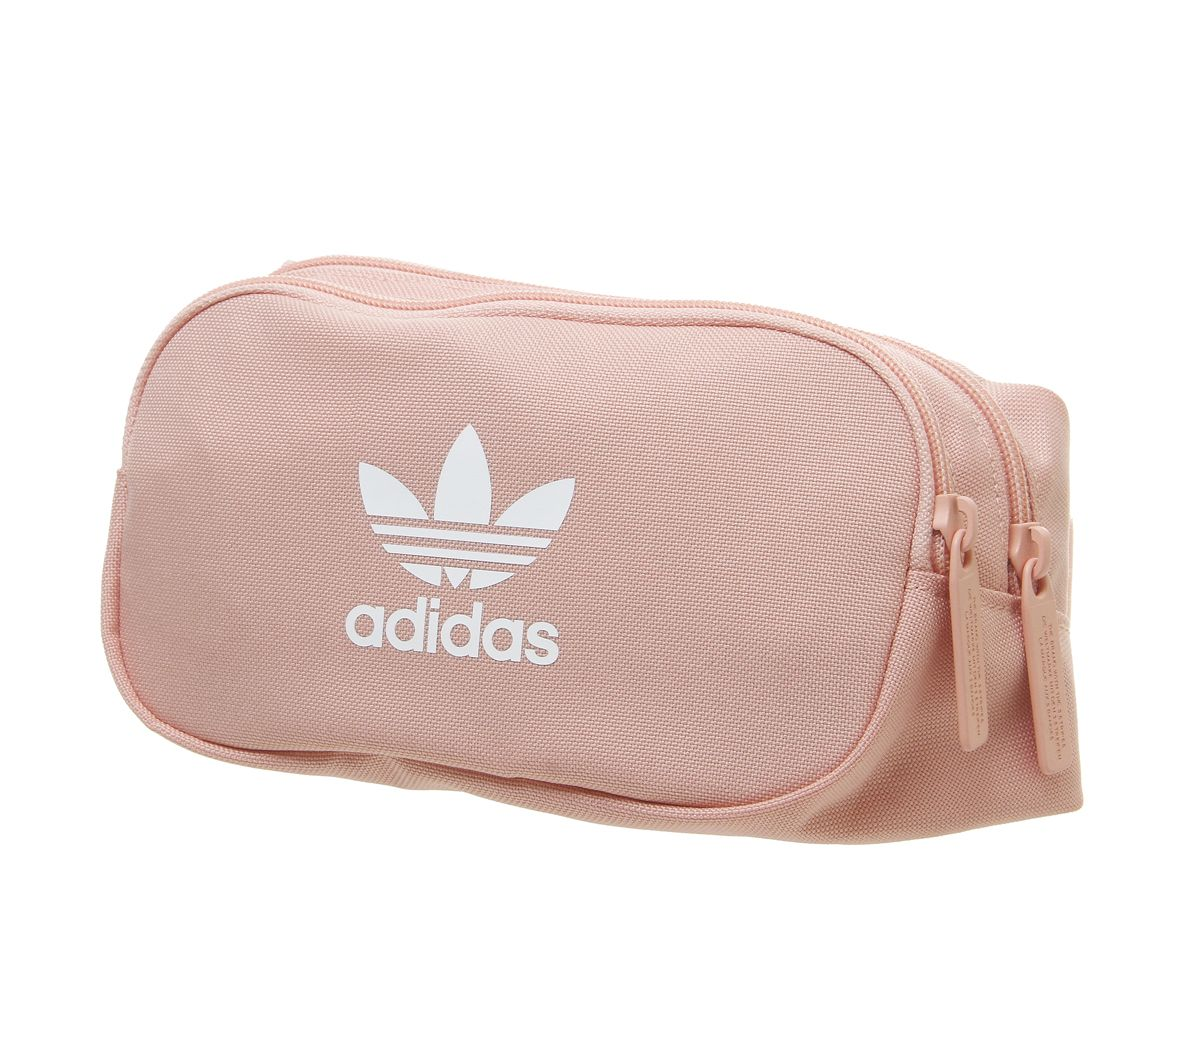 be4285489bf adidas Essential Crossbody Bag Dust Pink - Accessories